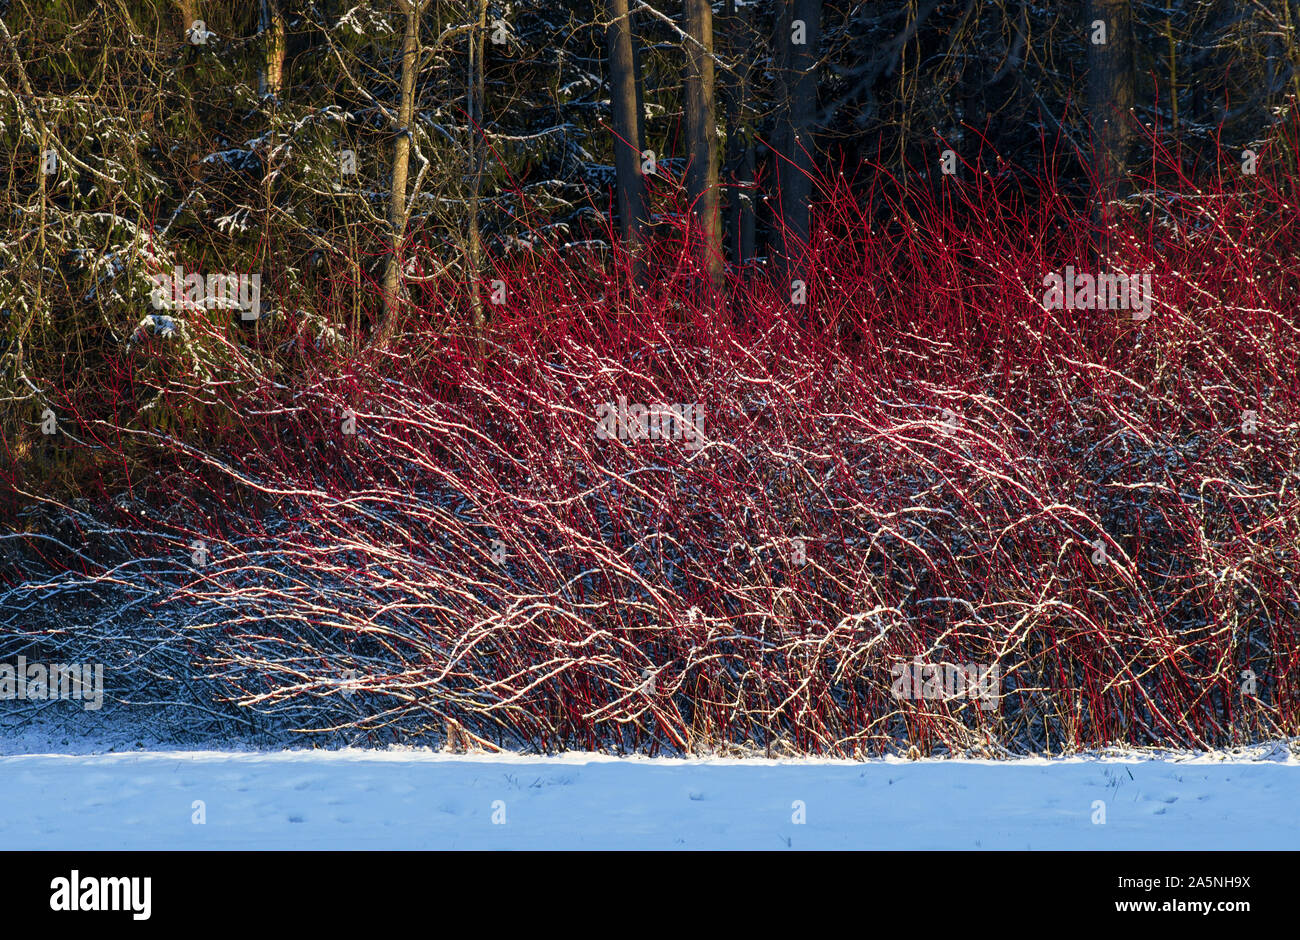 Winter landscape with red willow bush covered with snow and illuminated by the sun Stock Photo